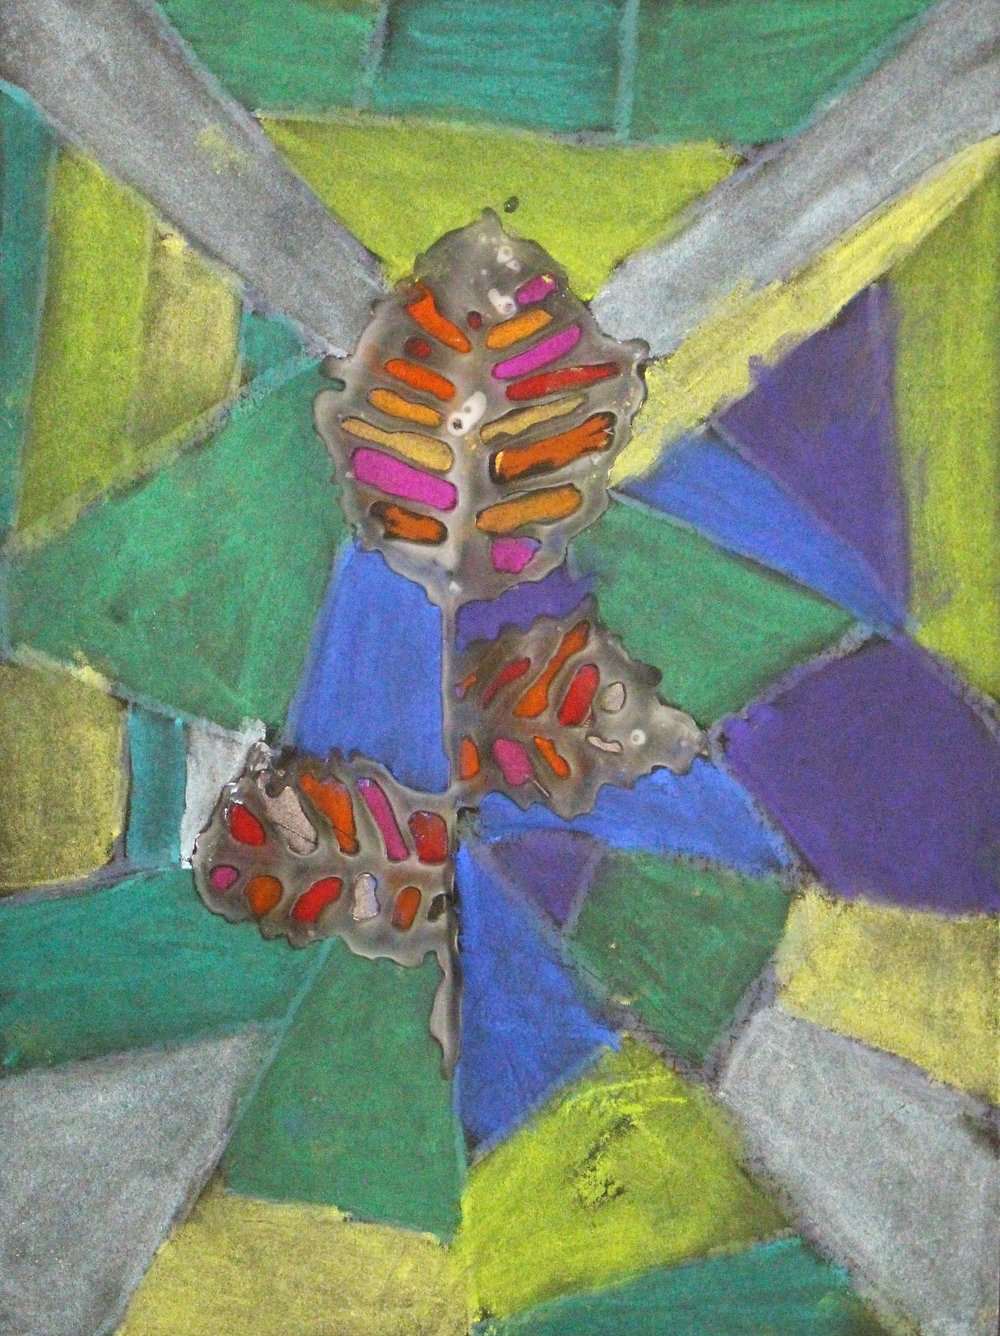 3rd Grade: Alexandria M. - Artwork: Fall Leaves